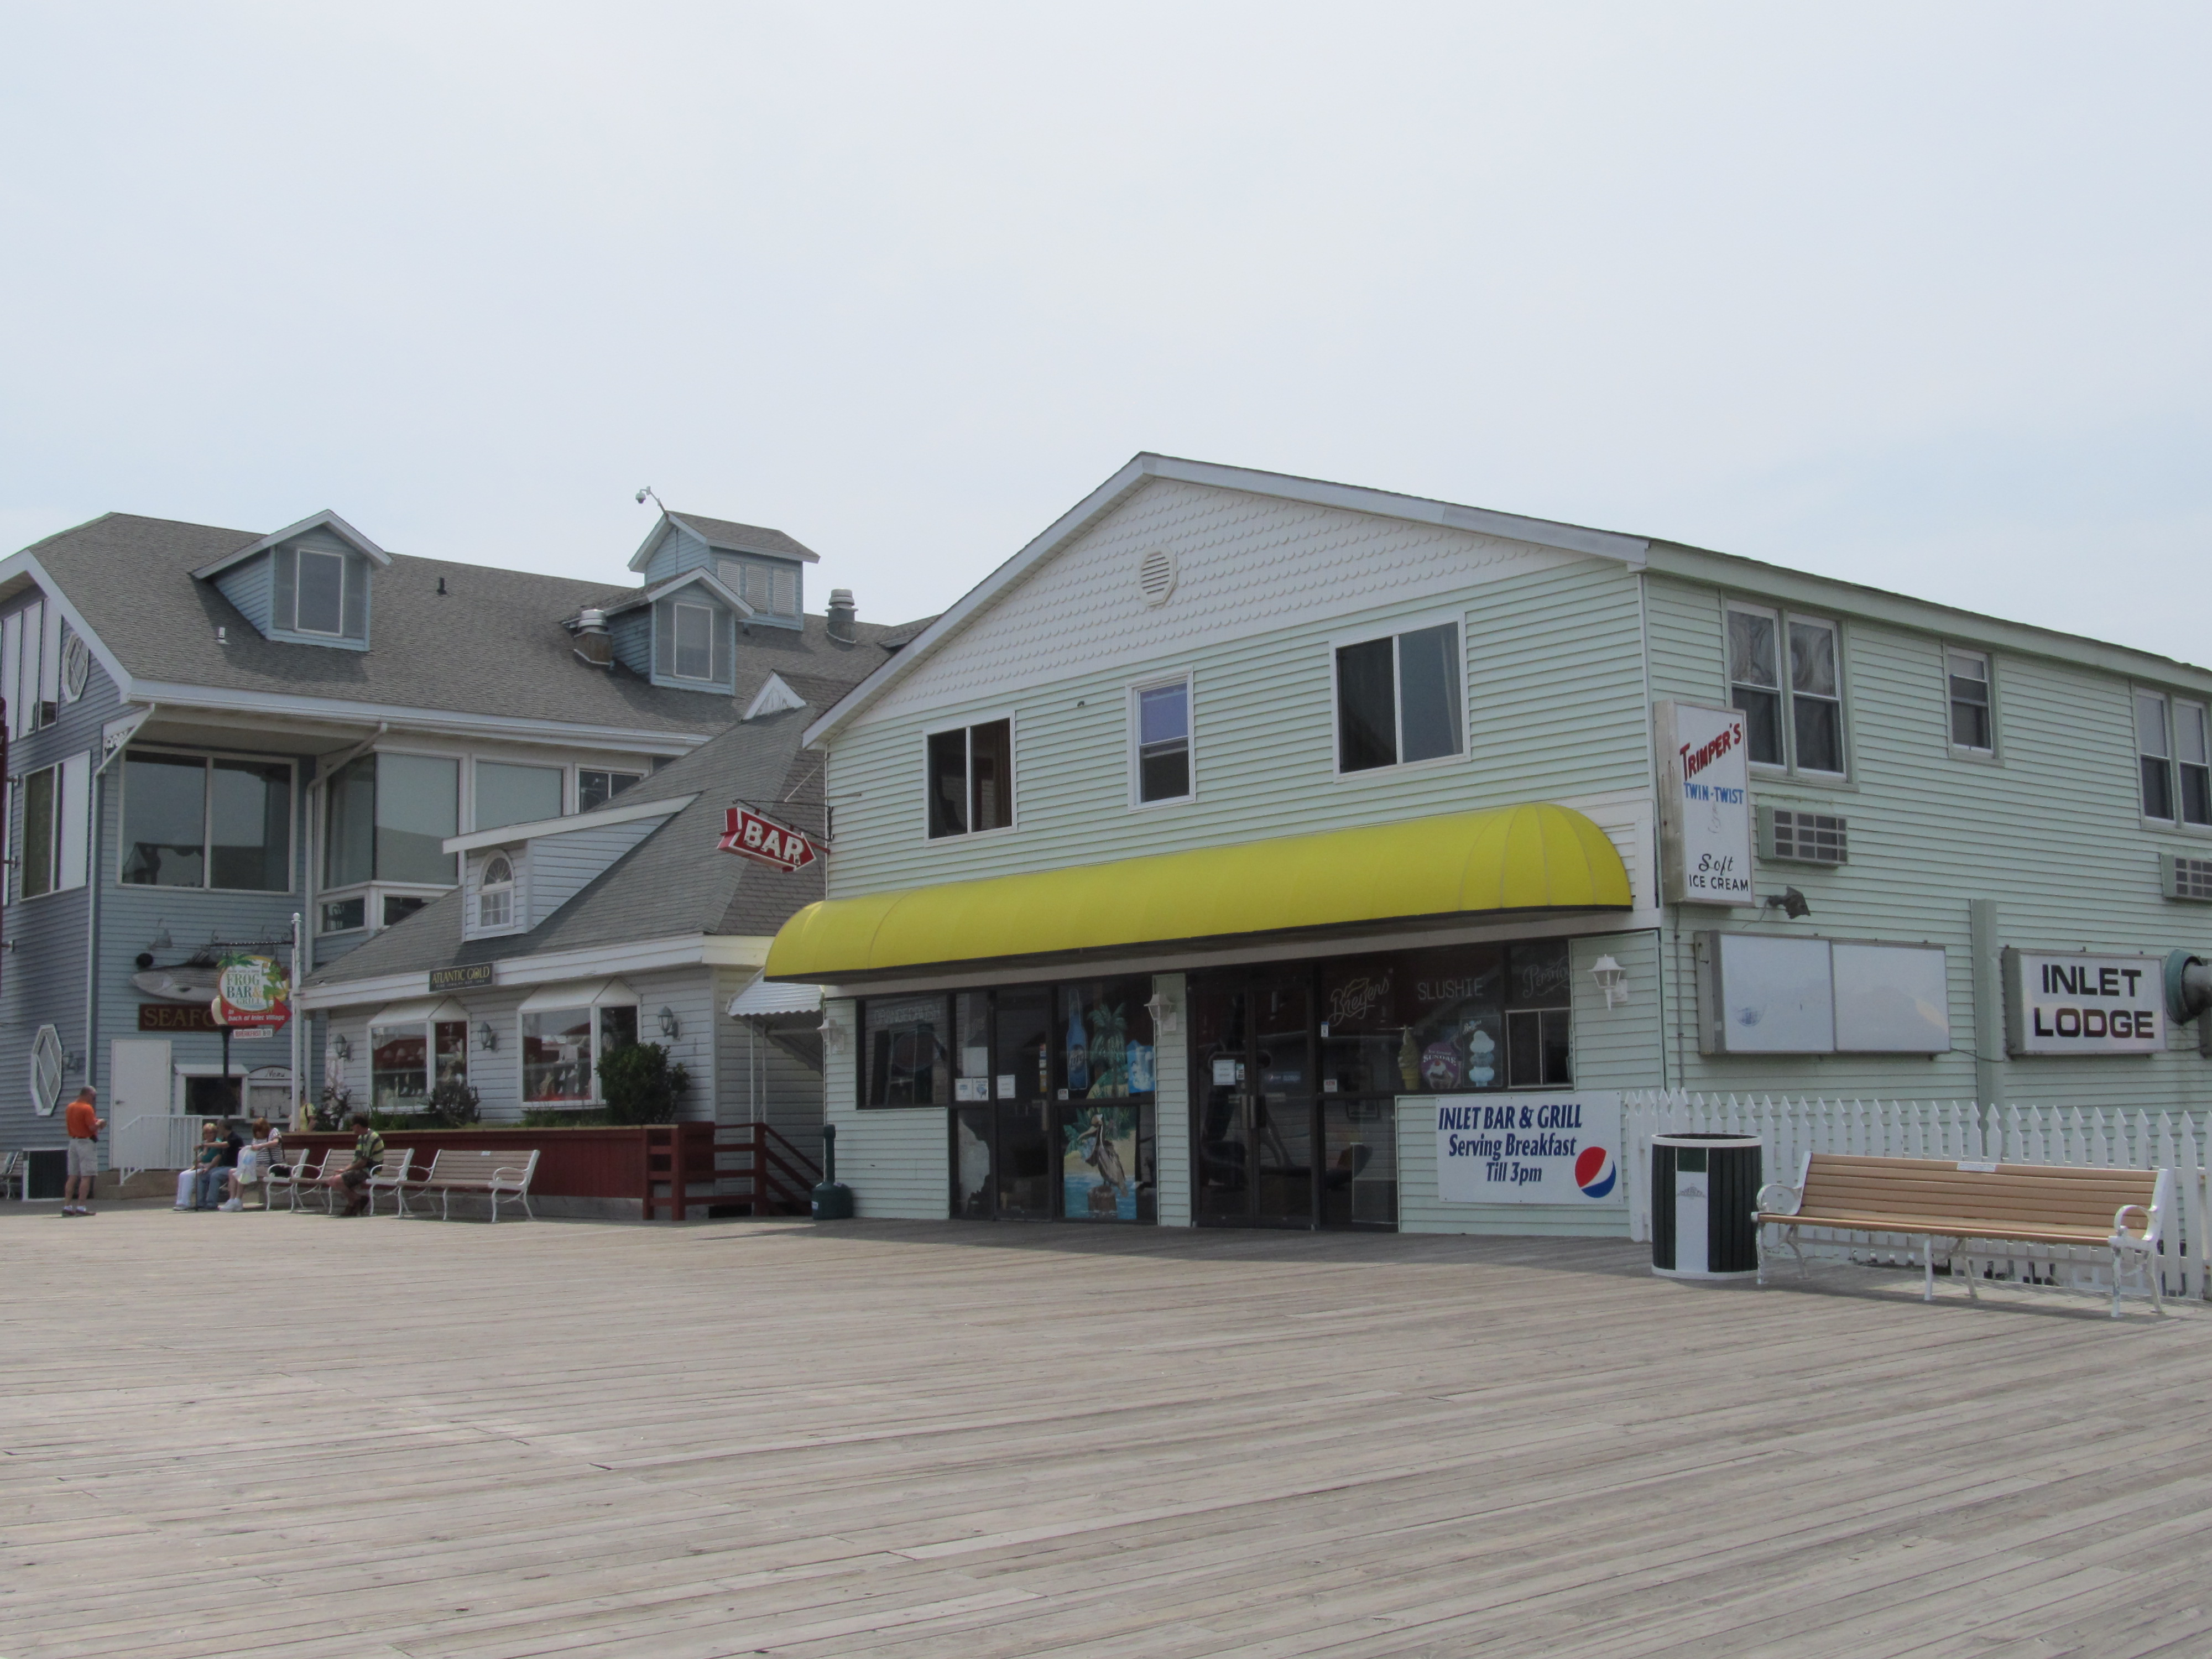 073-front-of-lodgefromboardwalk